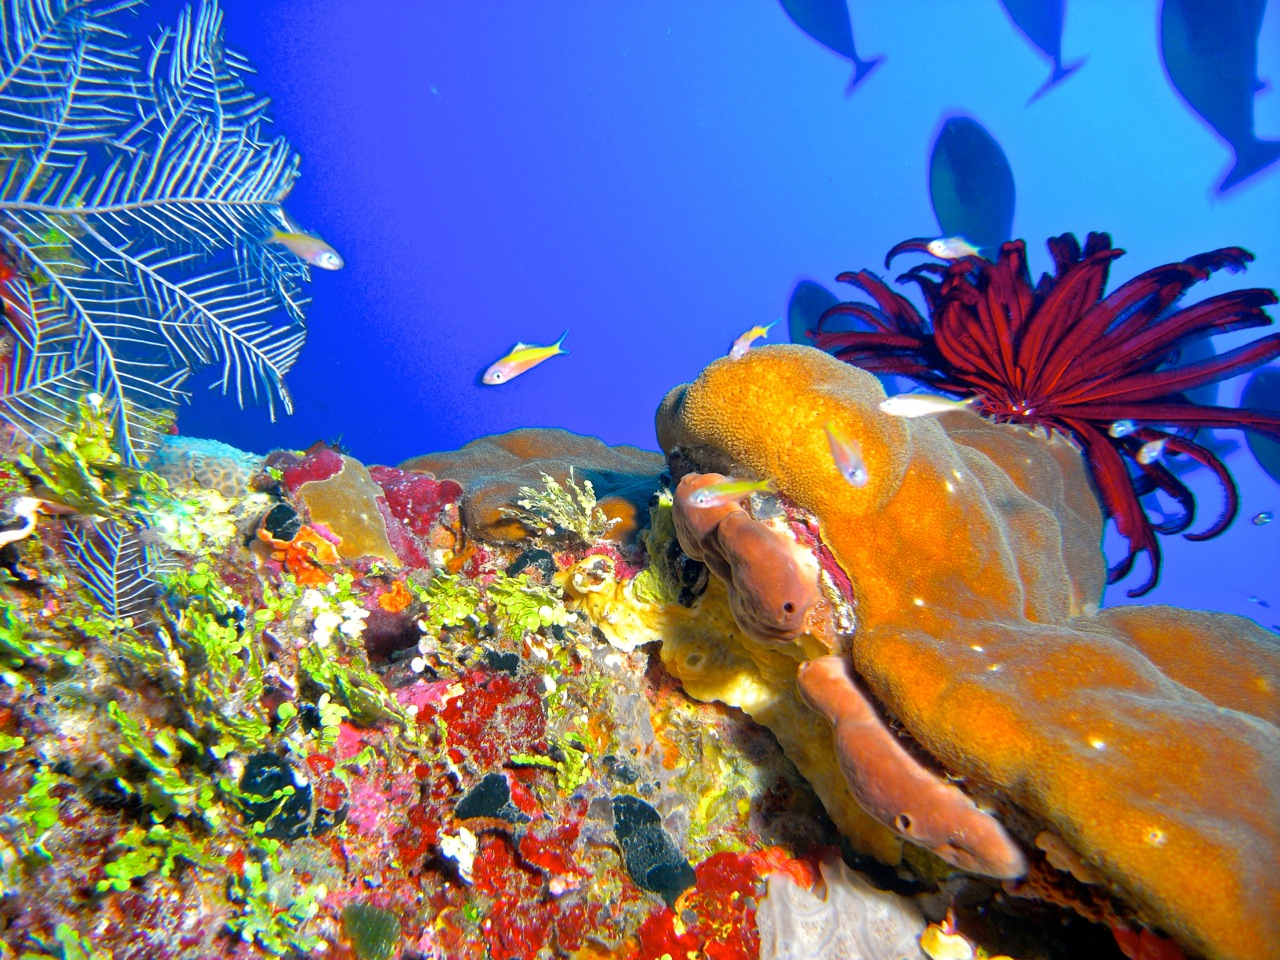 A glimpse of the biodiversity on a shallower Scott Reef site.